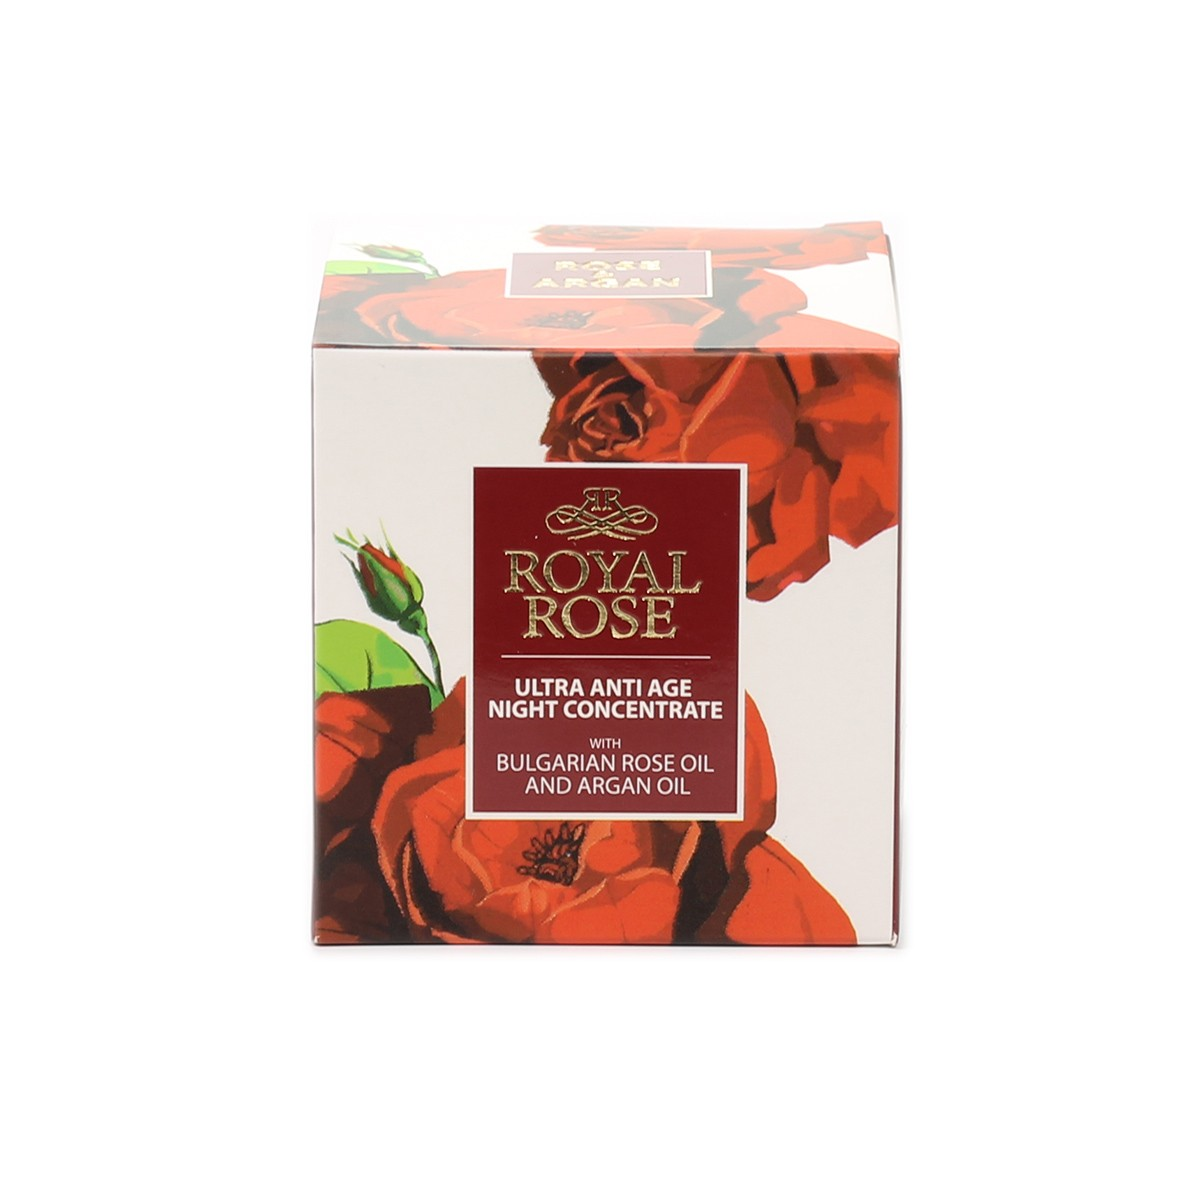 Ultra anti-age night concentrate with Bulgarian rose oil Royal Rose Biofresh